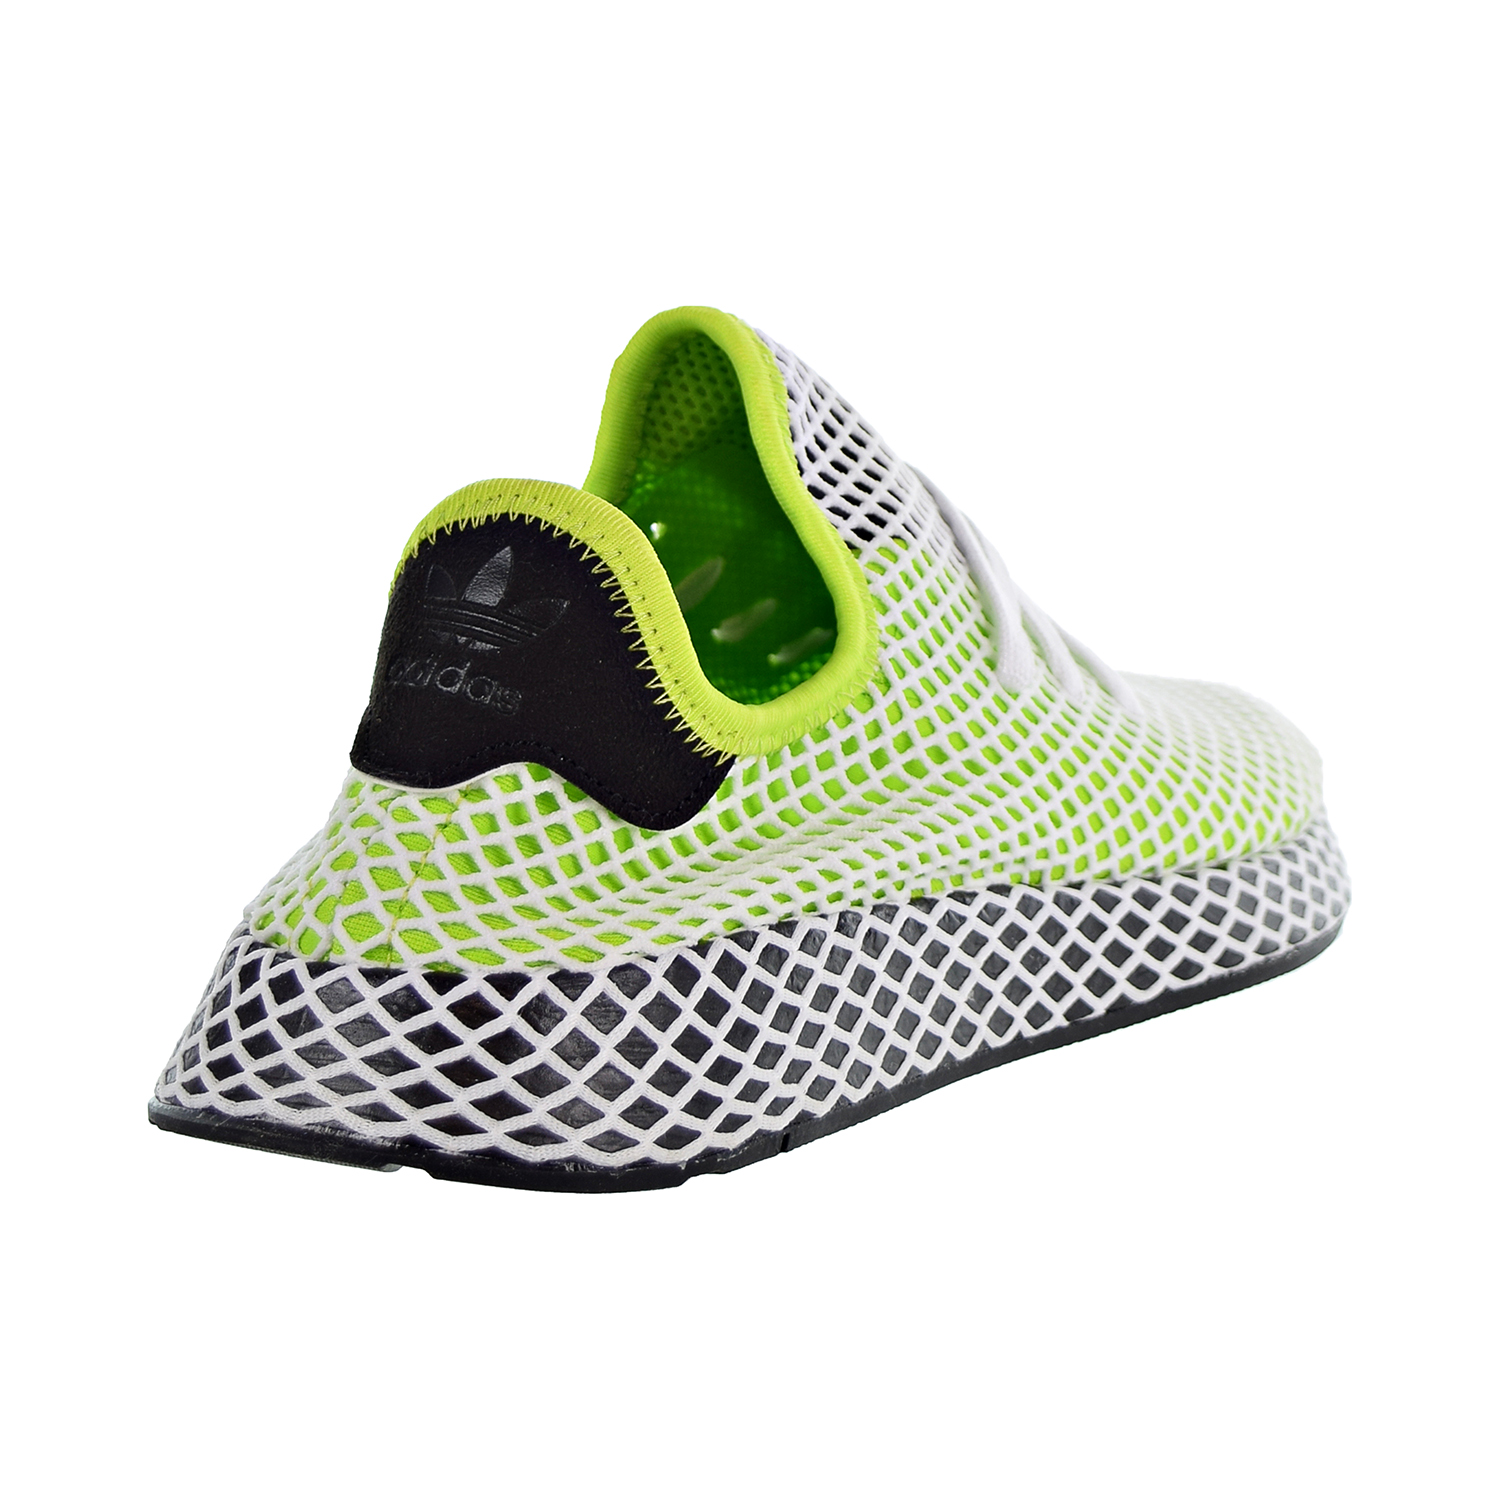 4d09da32bb388 Adidas Originals Deerupt Runner Men s Shoes Solar Slime Core Black Core  Black b27779